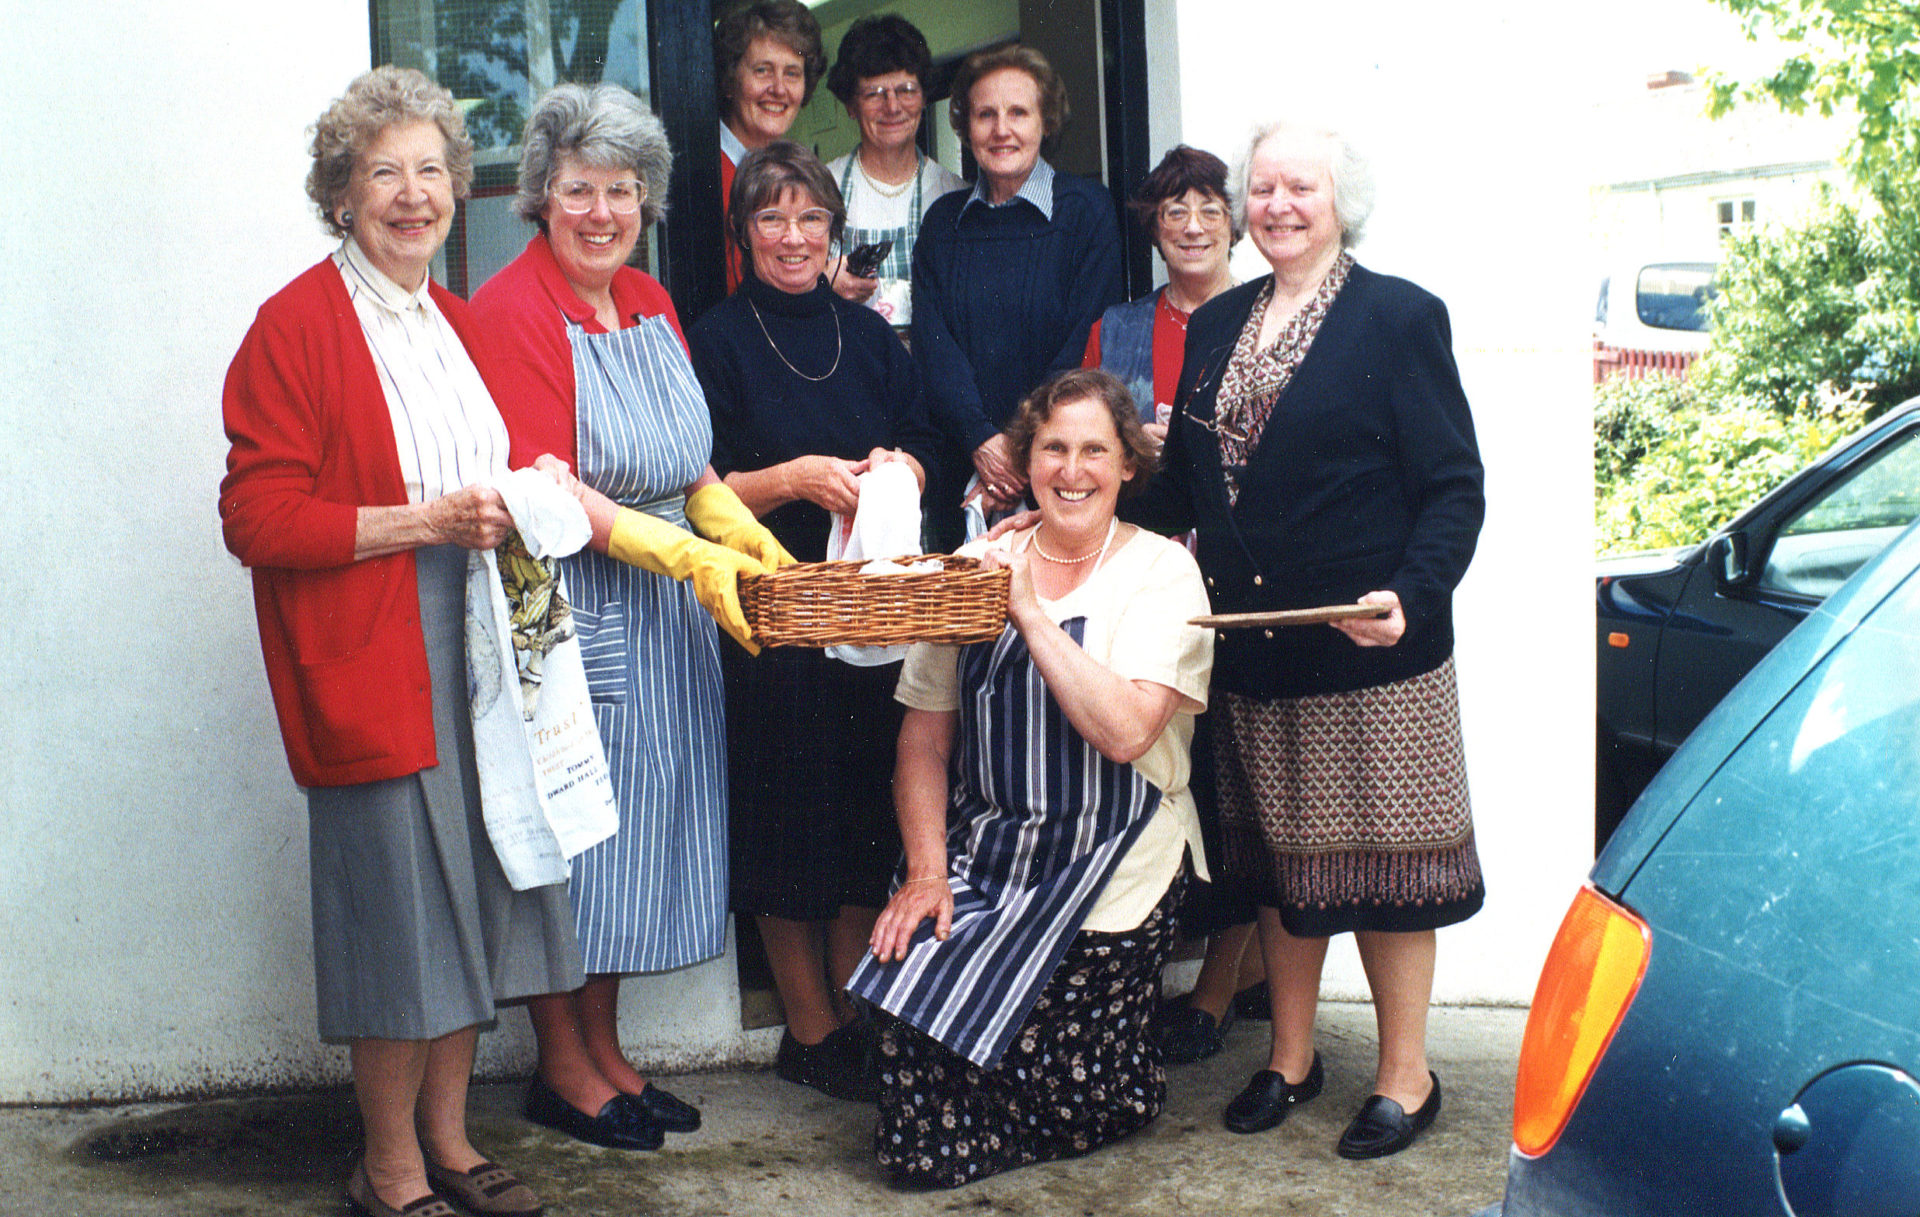 Christian Aid Lunch Back Row: Margaret, Lyn, Wendy. Middle row 2 Pams, Ann, Lorna, Jean with Alison kneeling.